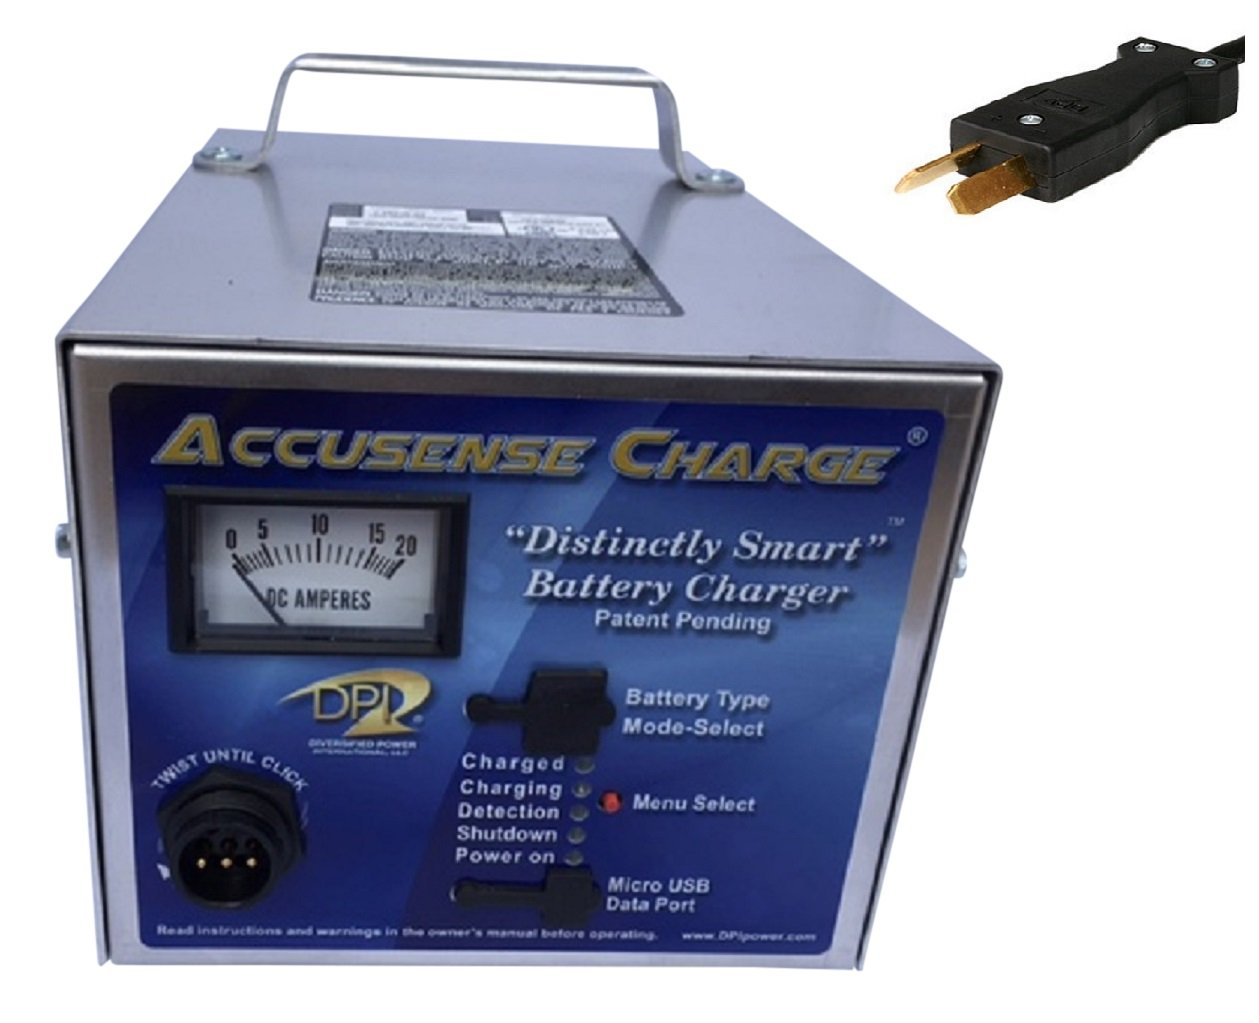 36volt 18 Amp Golf Cart Battery Charger with Crowfoot Connector by DPI Gen IV by Accusense Charge Series (Image #1)